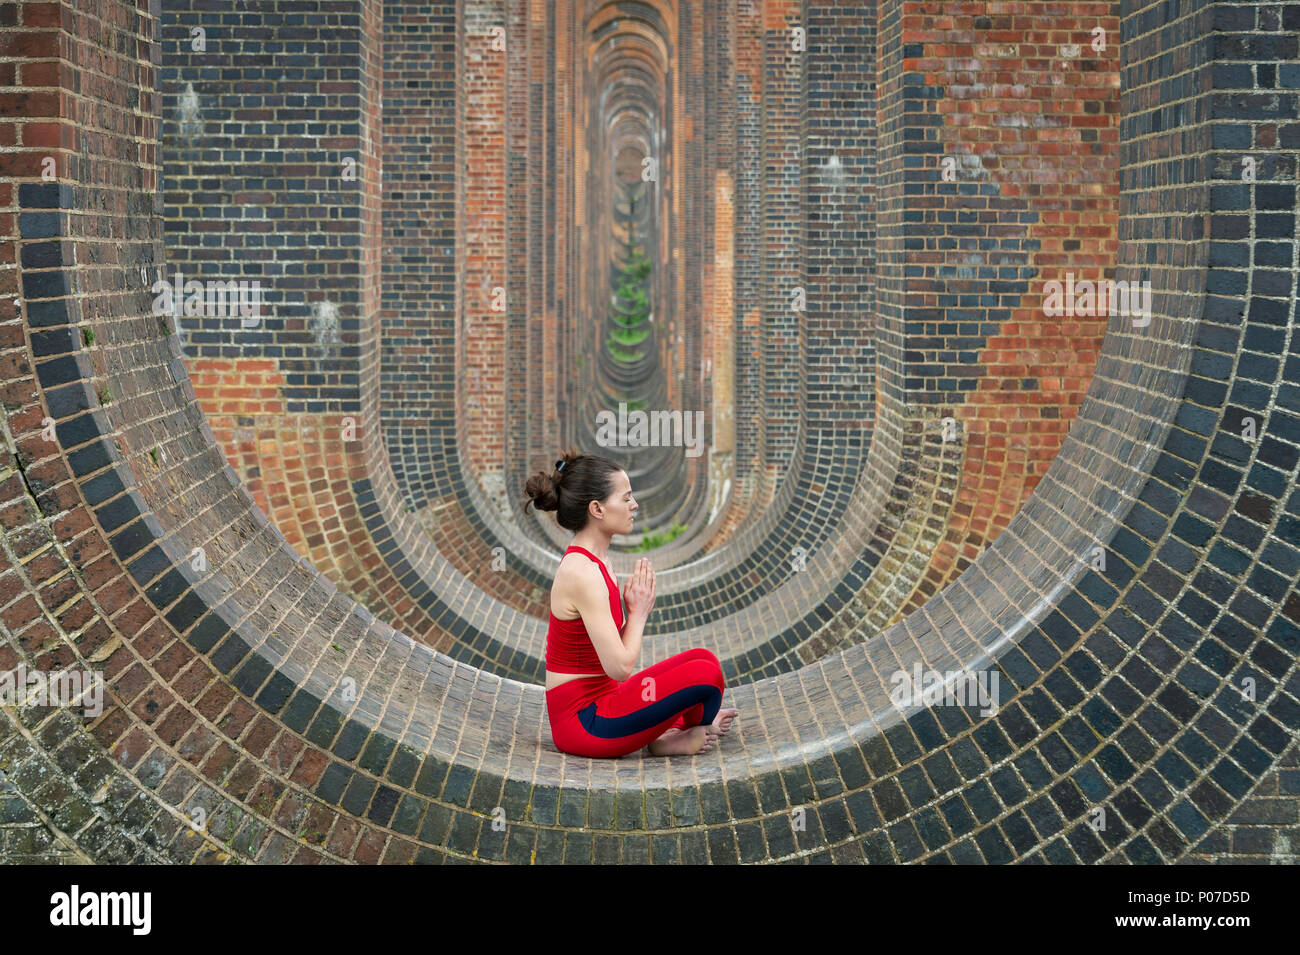 woman sitting in the arches of the Ouse Valley Viaduct practicing yoga and meditating - Stock Image